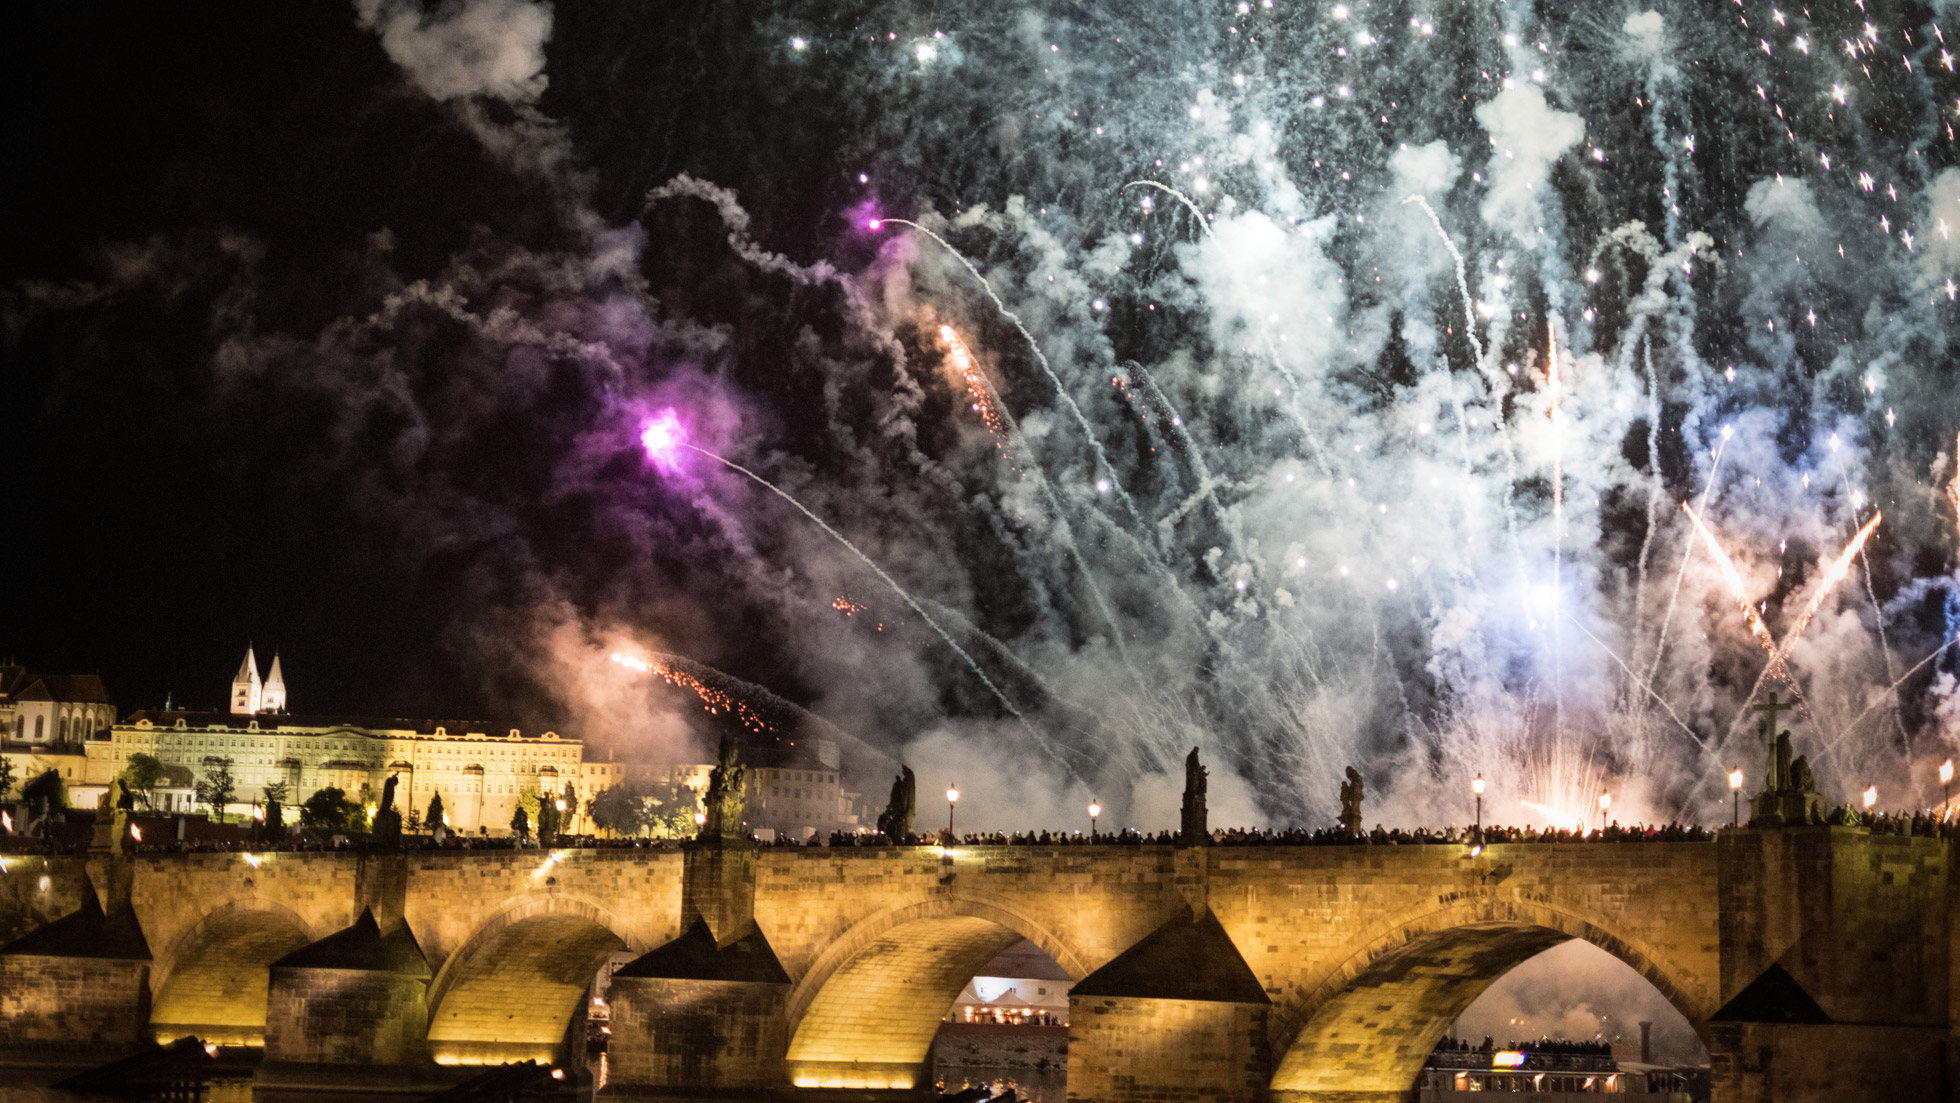 New Year Fireworks over Charles Bridge in Prague with Prague Castle in the background